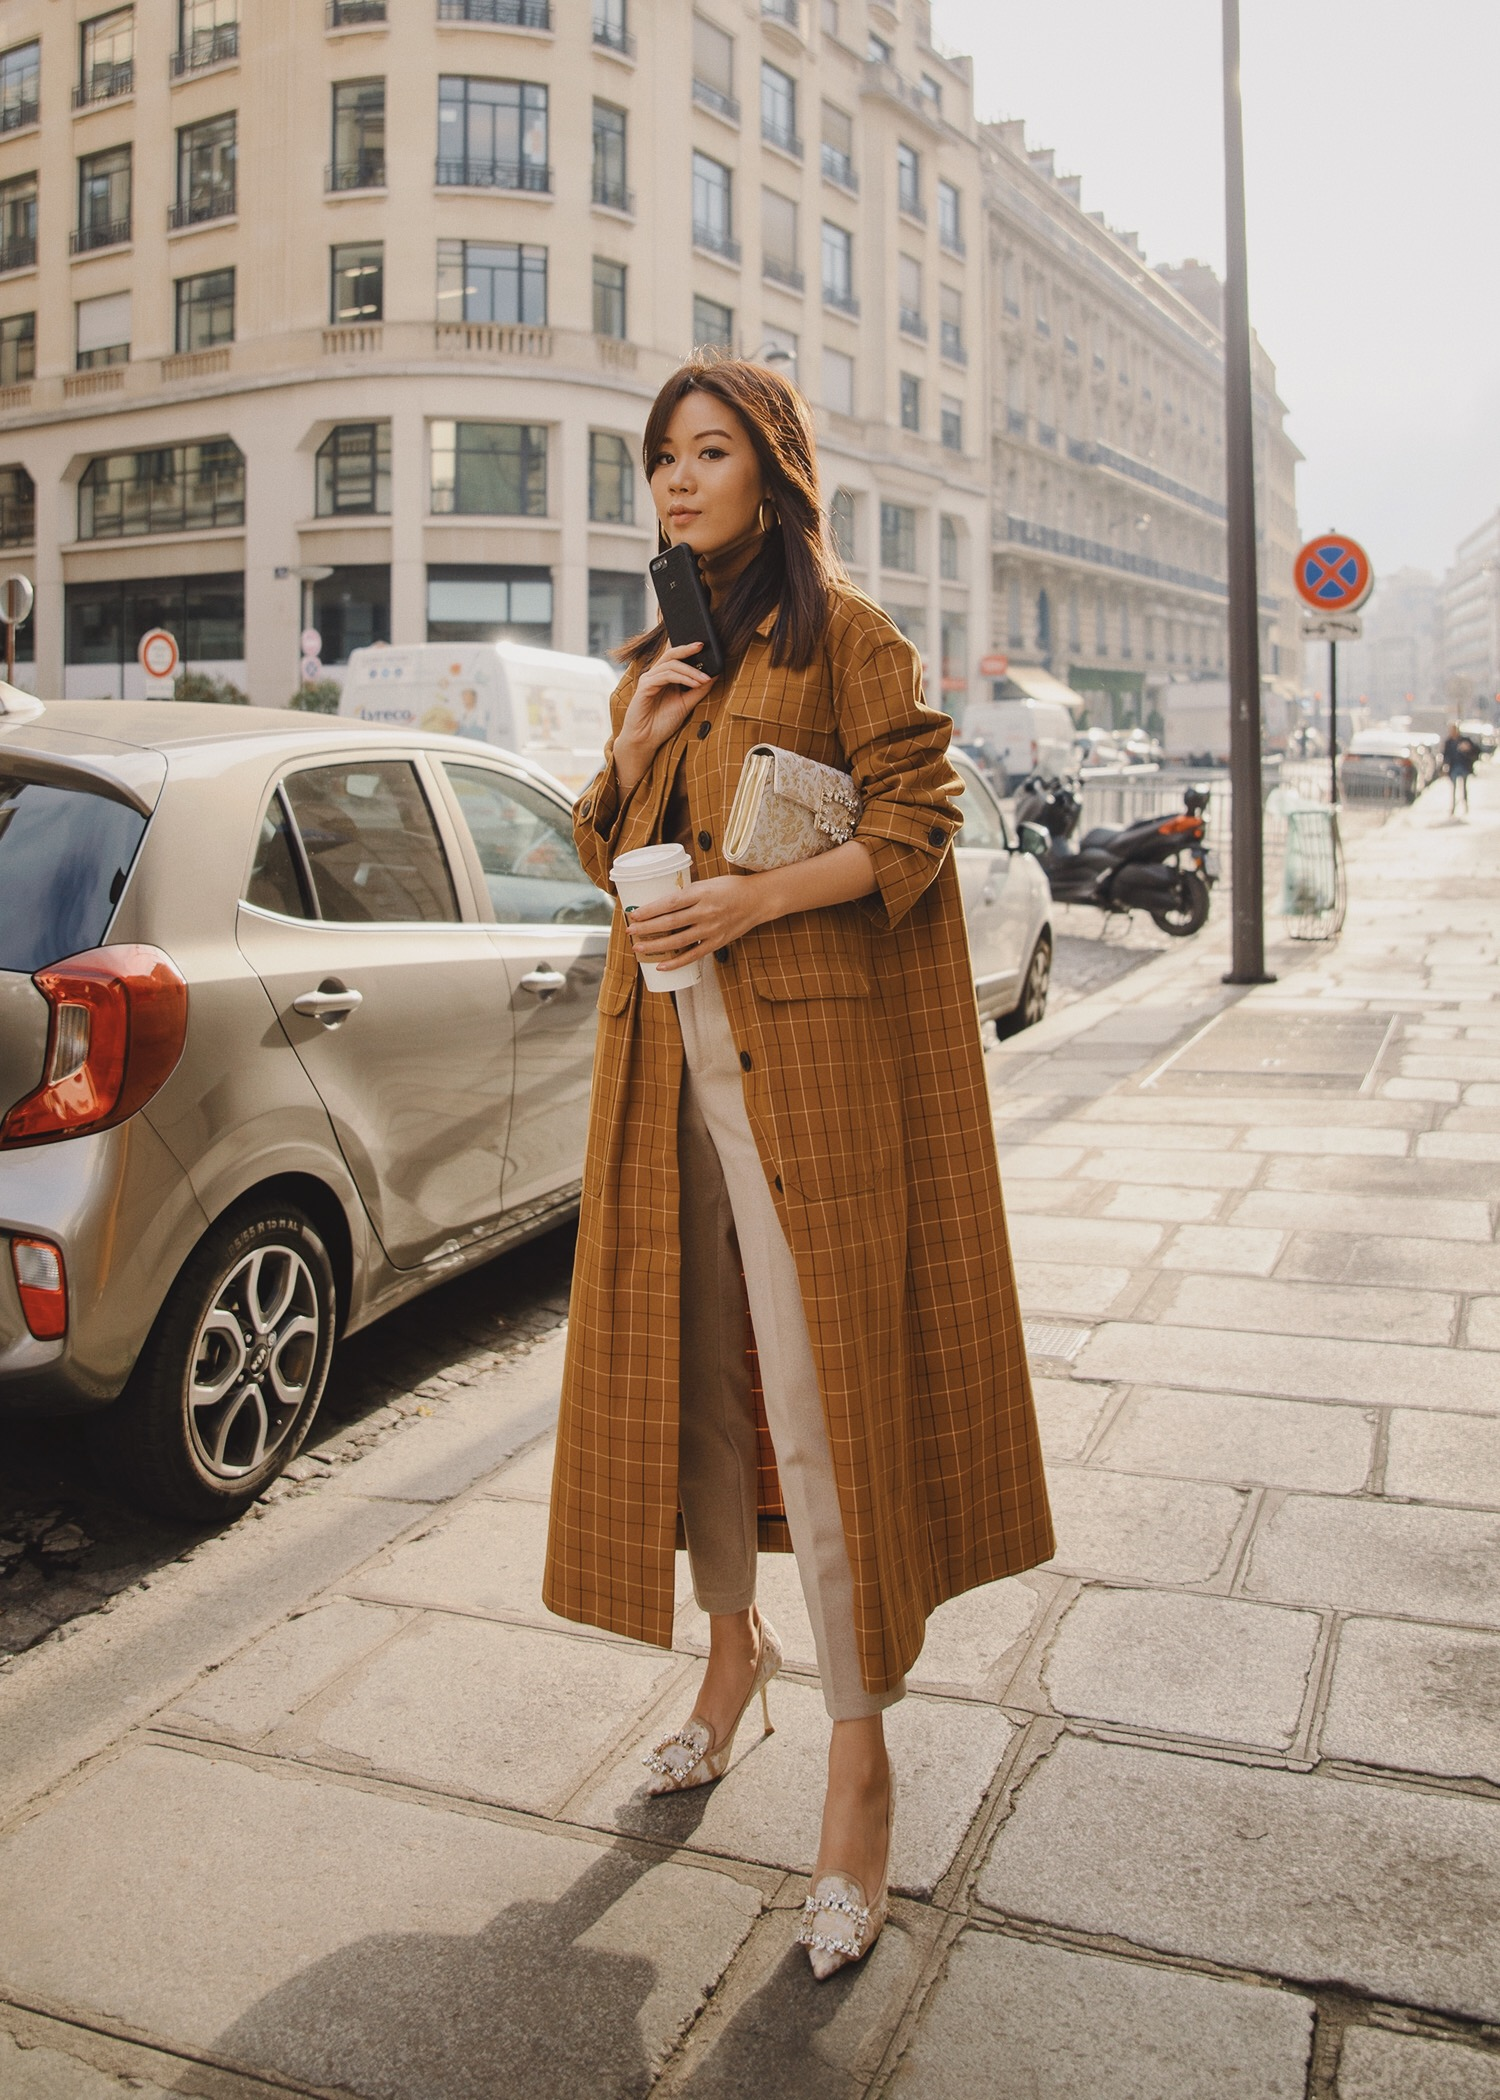 Jenny Tsang of Tsangtastic wearing Sea plaid trench coat with roger vivier pumps roger vivier clutch Paris Fashion Week